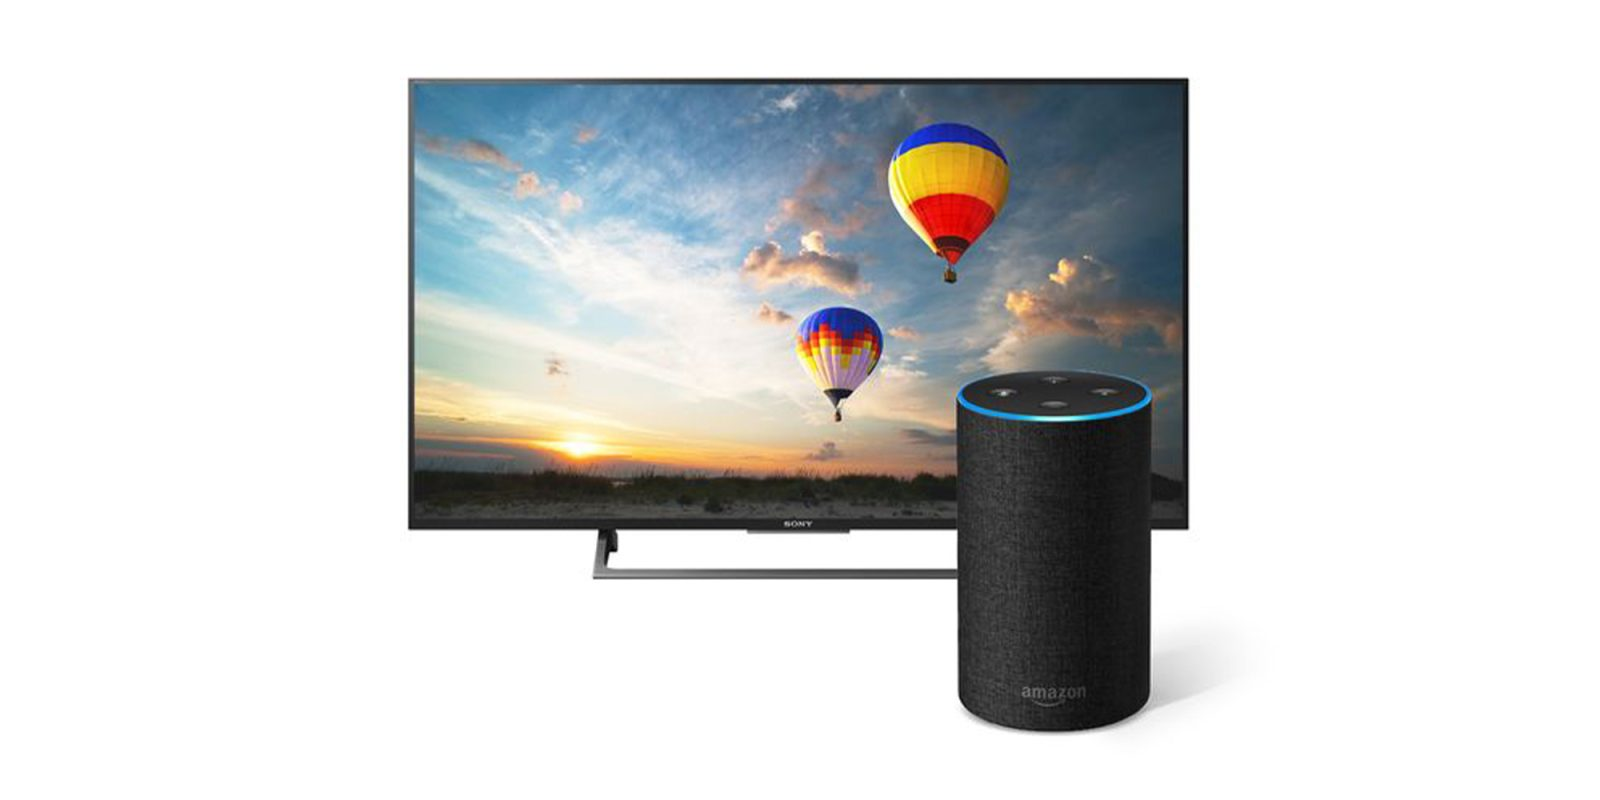 Amazon Alexa comes to Android TV, starting w/ Sony first